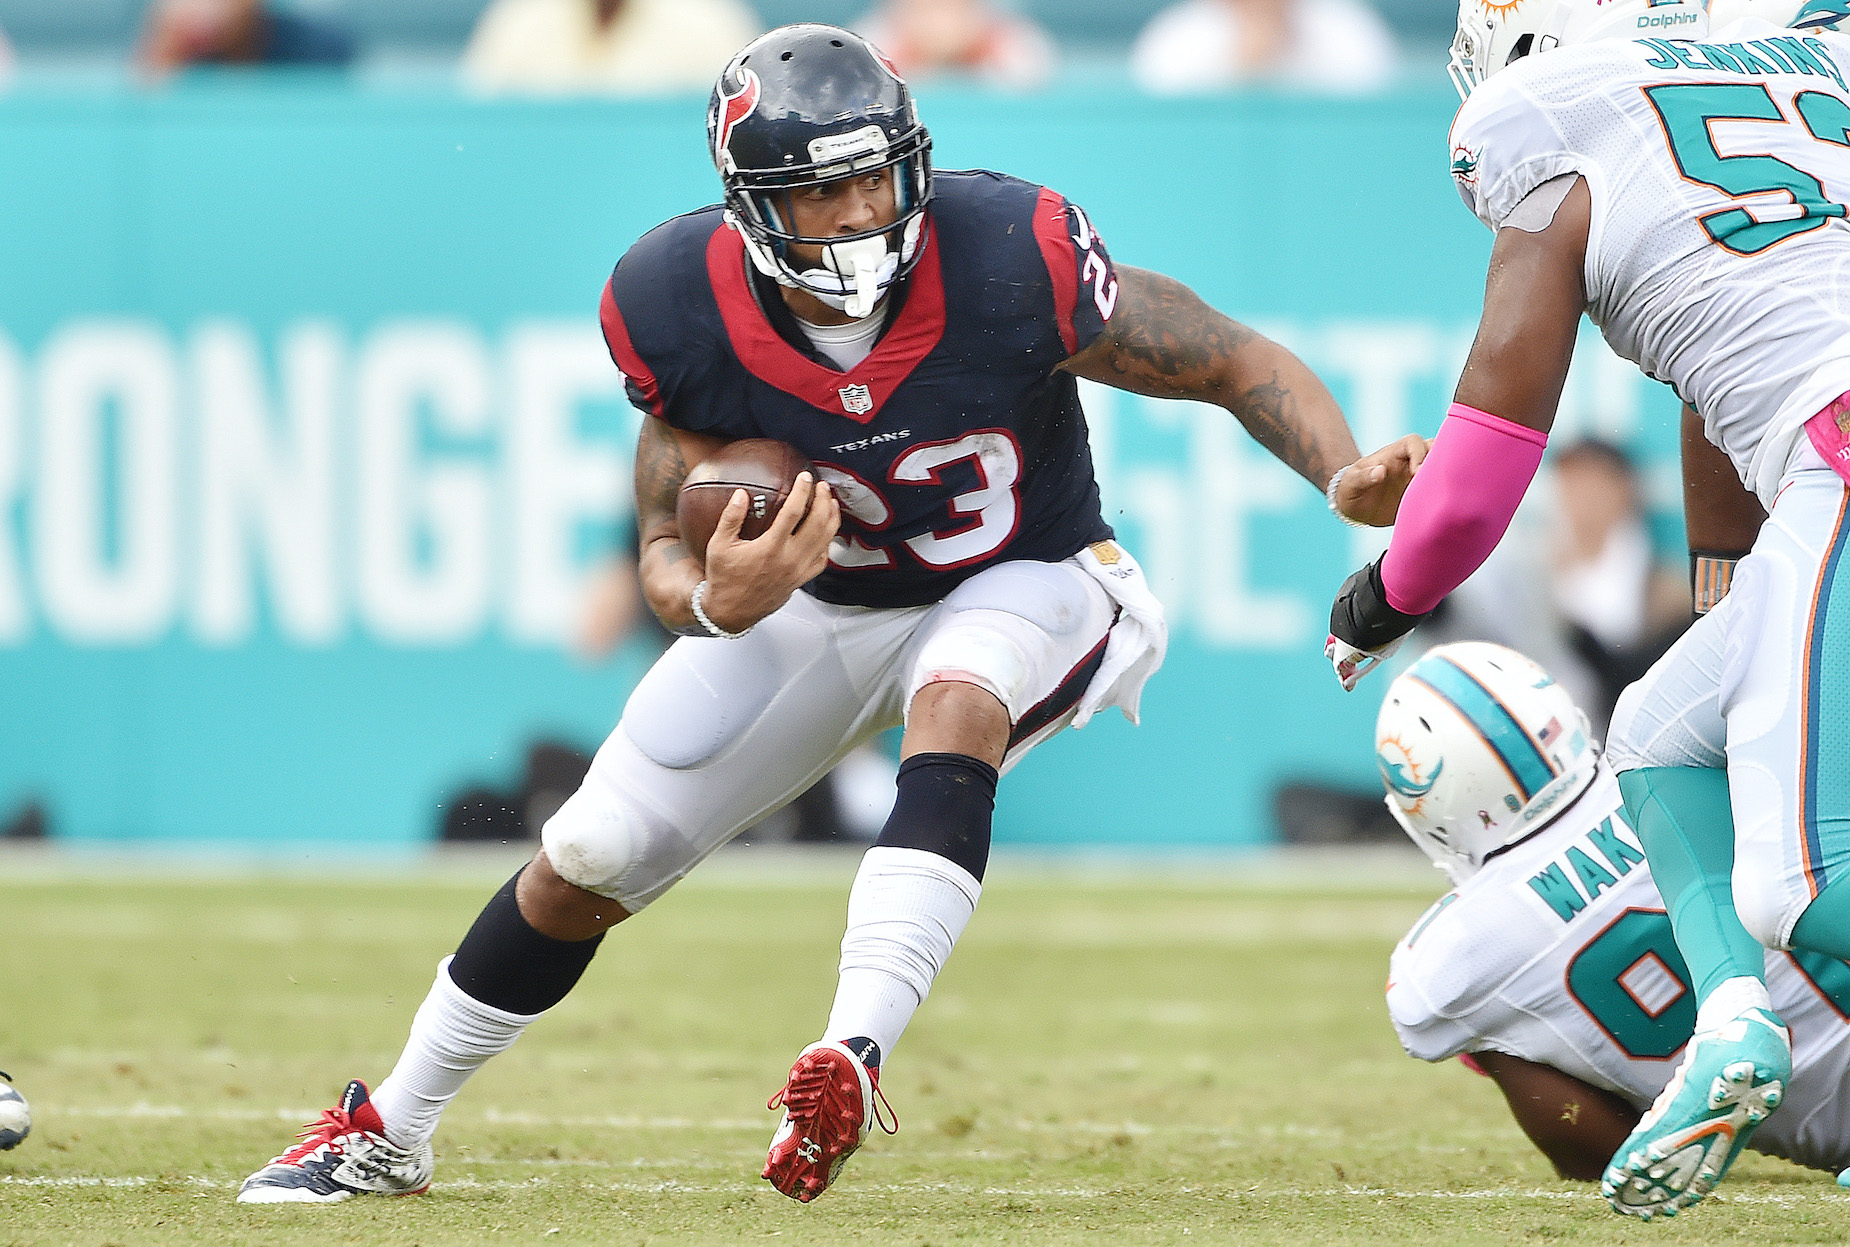 While Arian Foster has a sizable net worth thanks to his NFL career, he wouldn't play football again if he could do it all again.